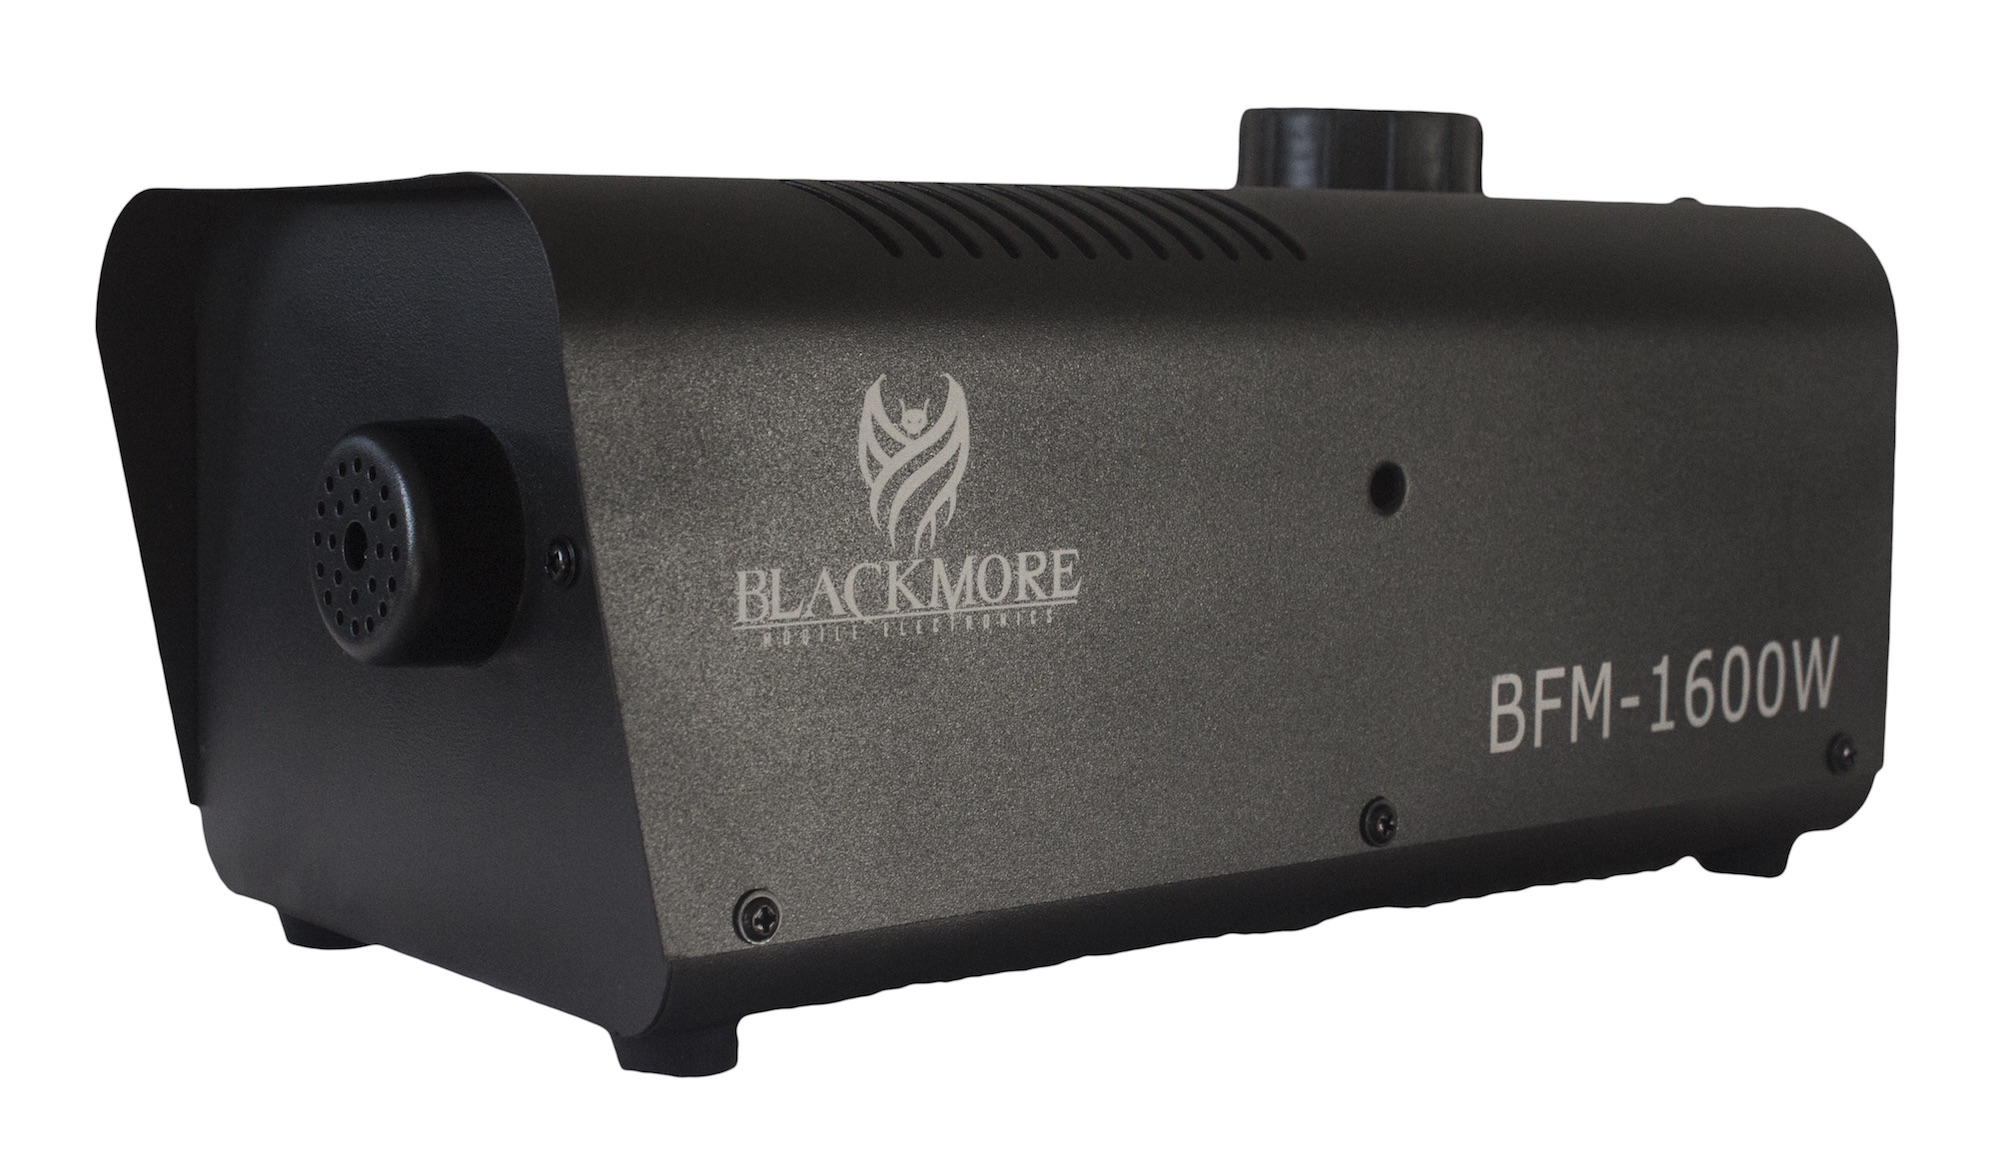 Blackmore Fog Machine 1600w (BFM-1600W) by Blackmore